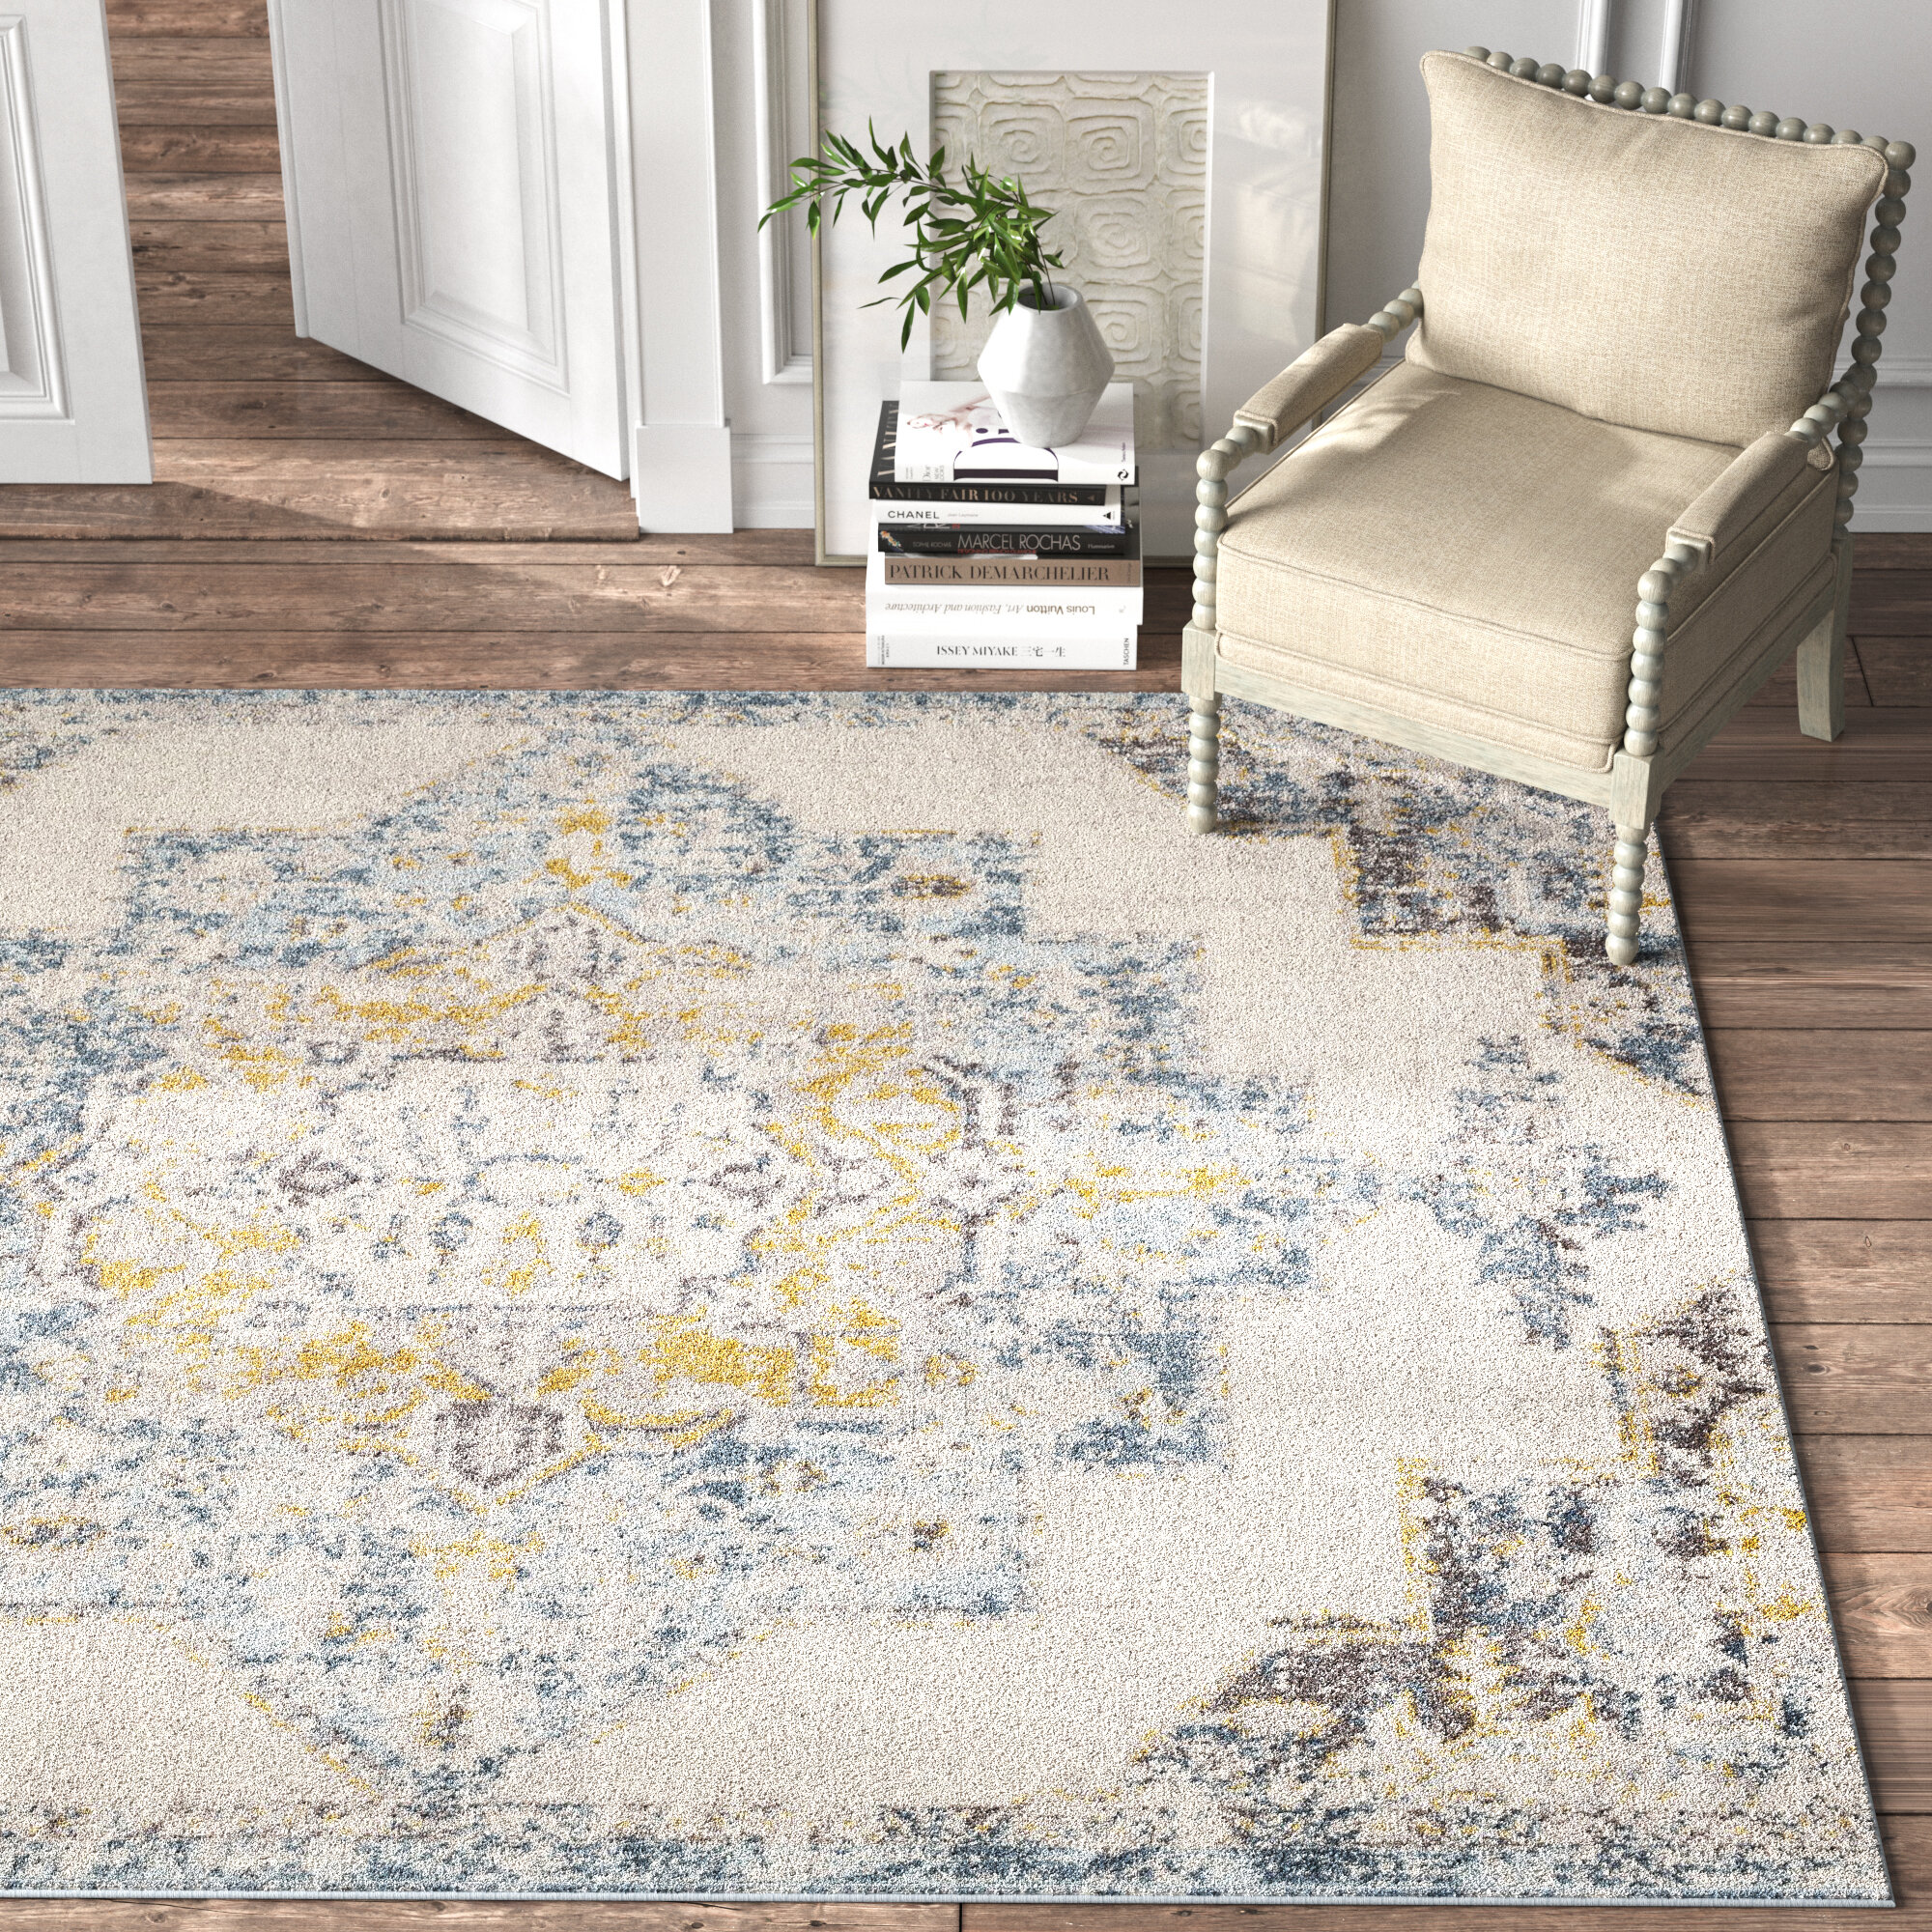 Wayfair Yellow Gold Area Rugs You Ll Love In 2021